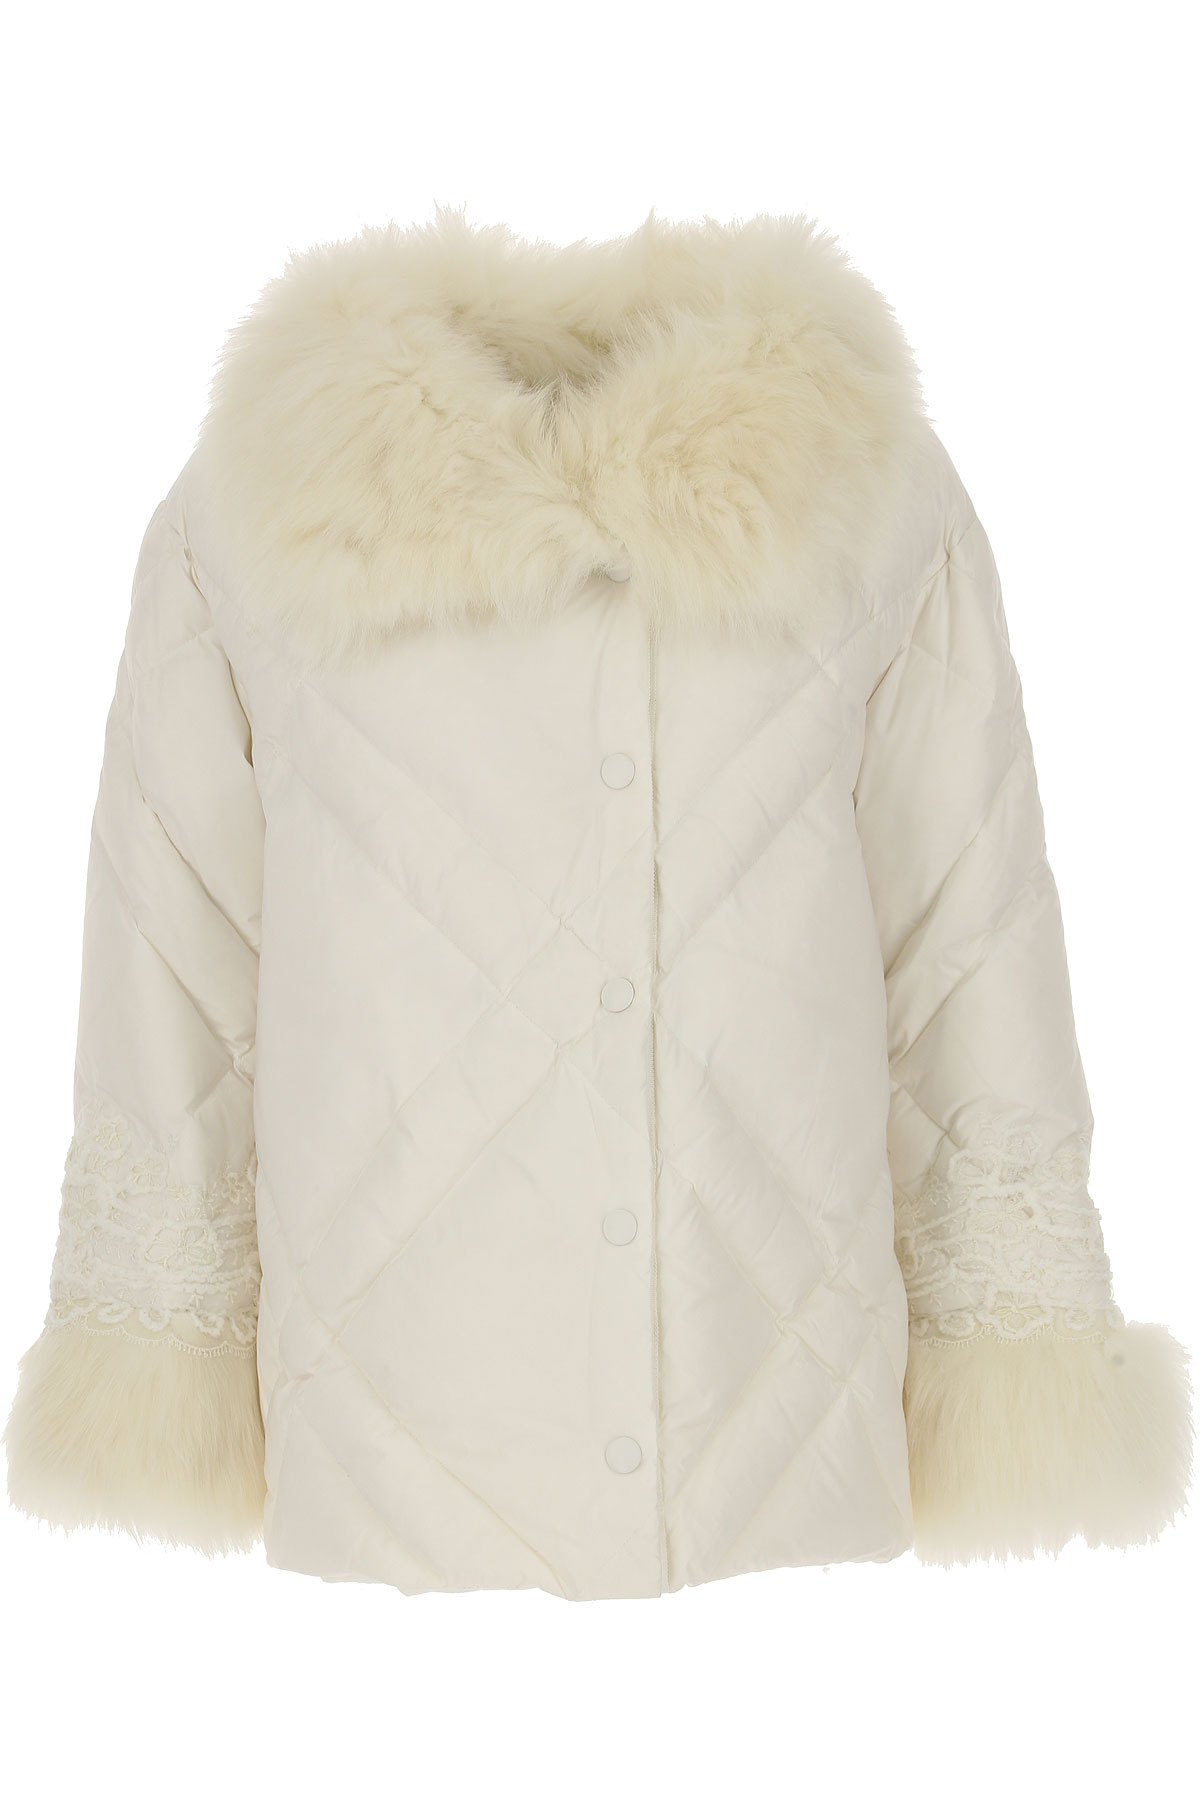 Image of Ermanno Scervino Down Jacket for Women, Puffer Ski Jacket, White, Down, 2017, 4 6